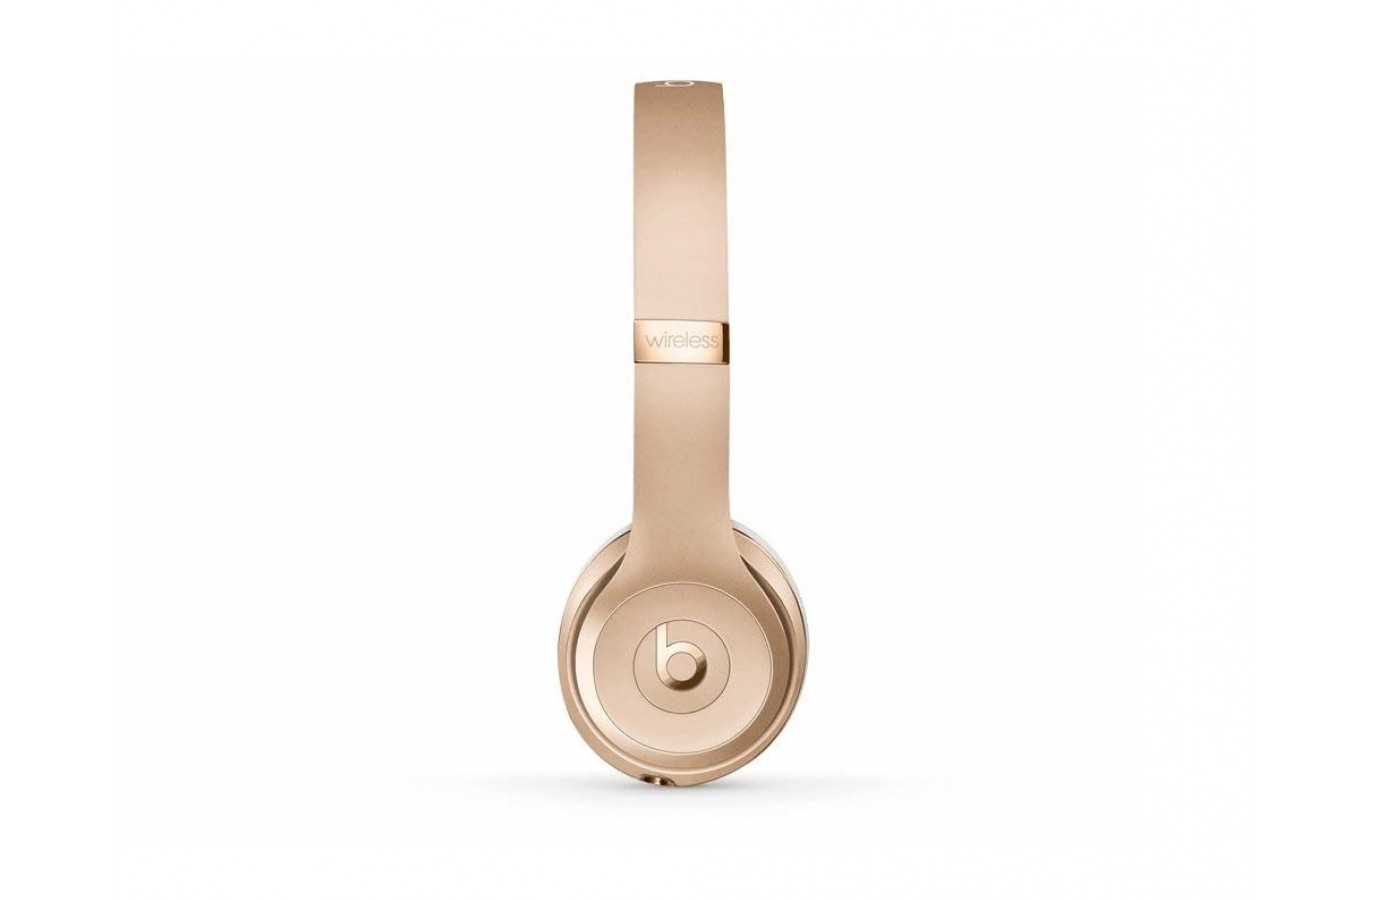 The Beats Solo 3 offers an adjustable fit for a better fit depending on the user.